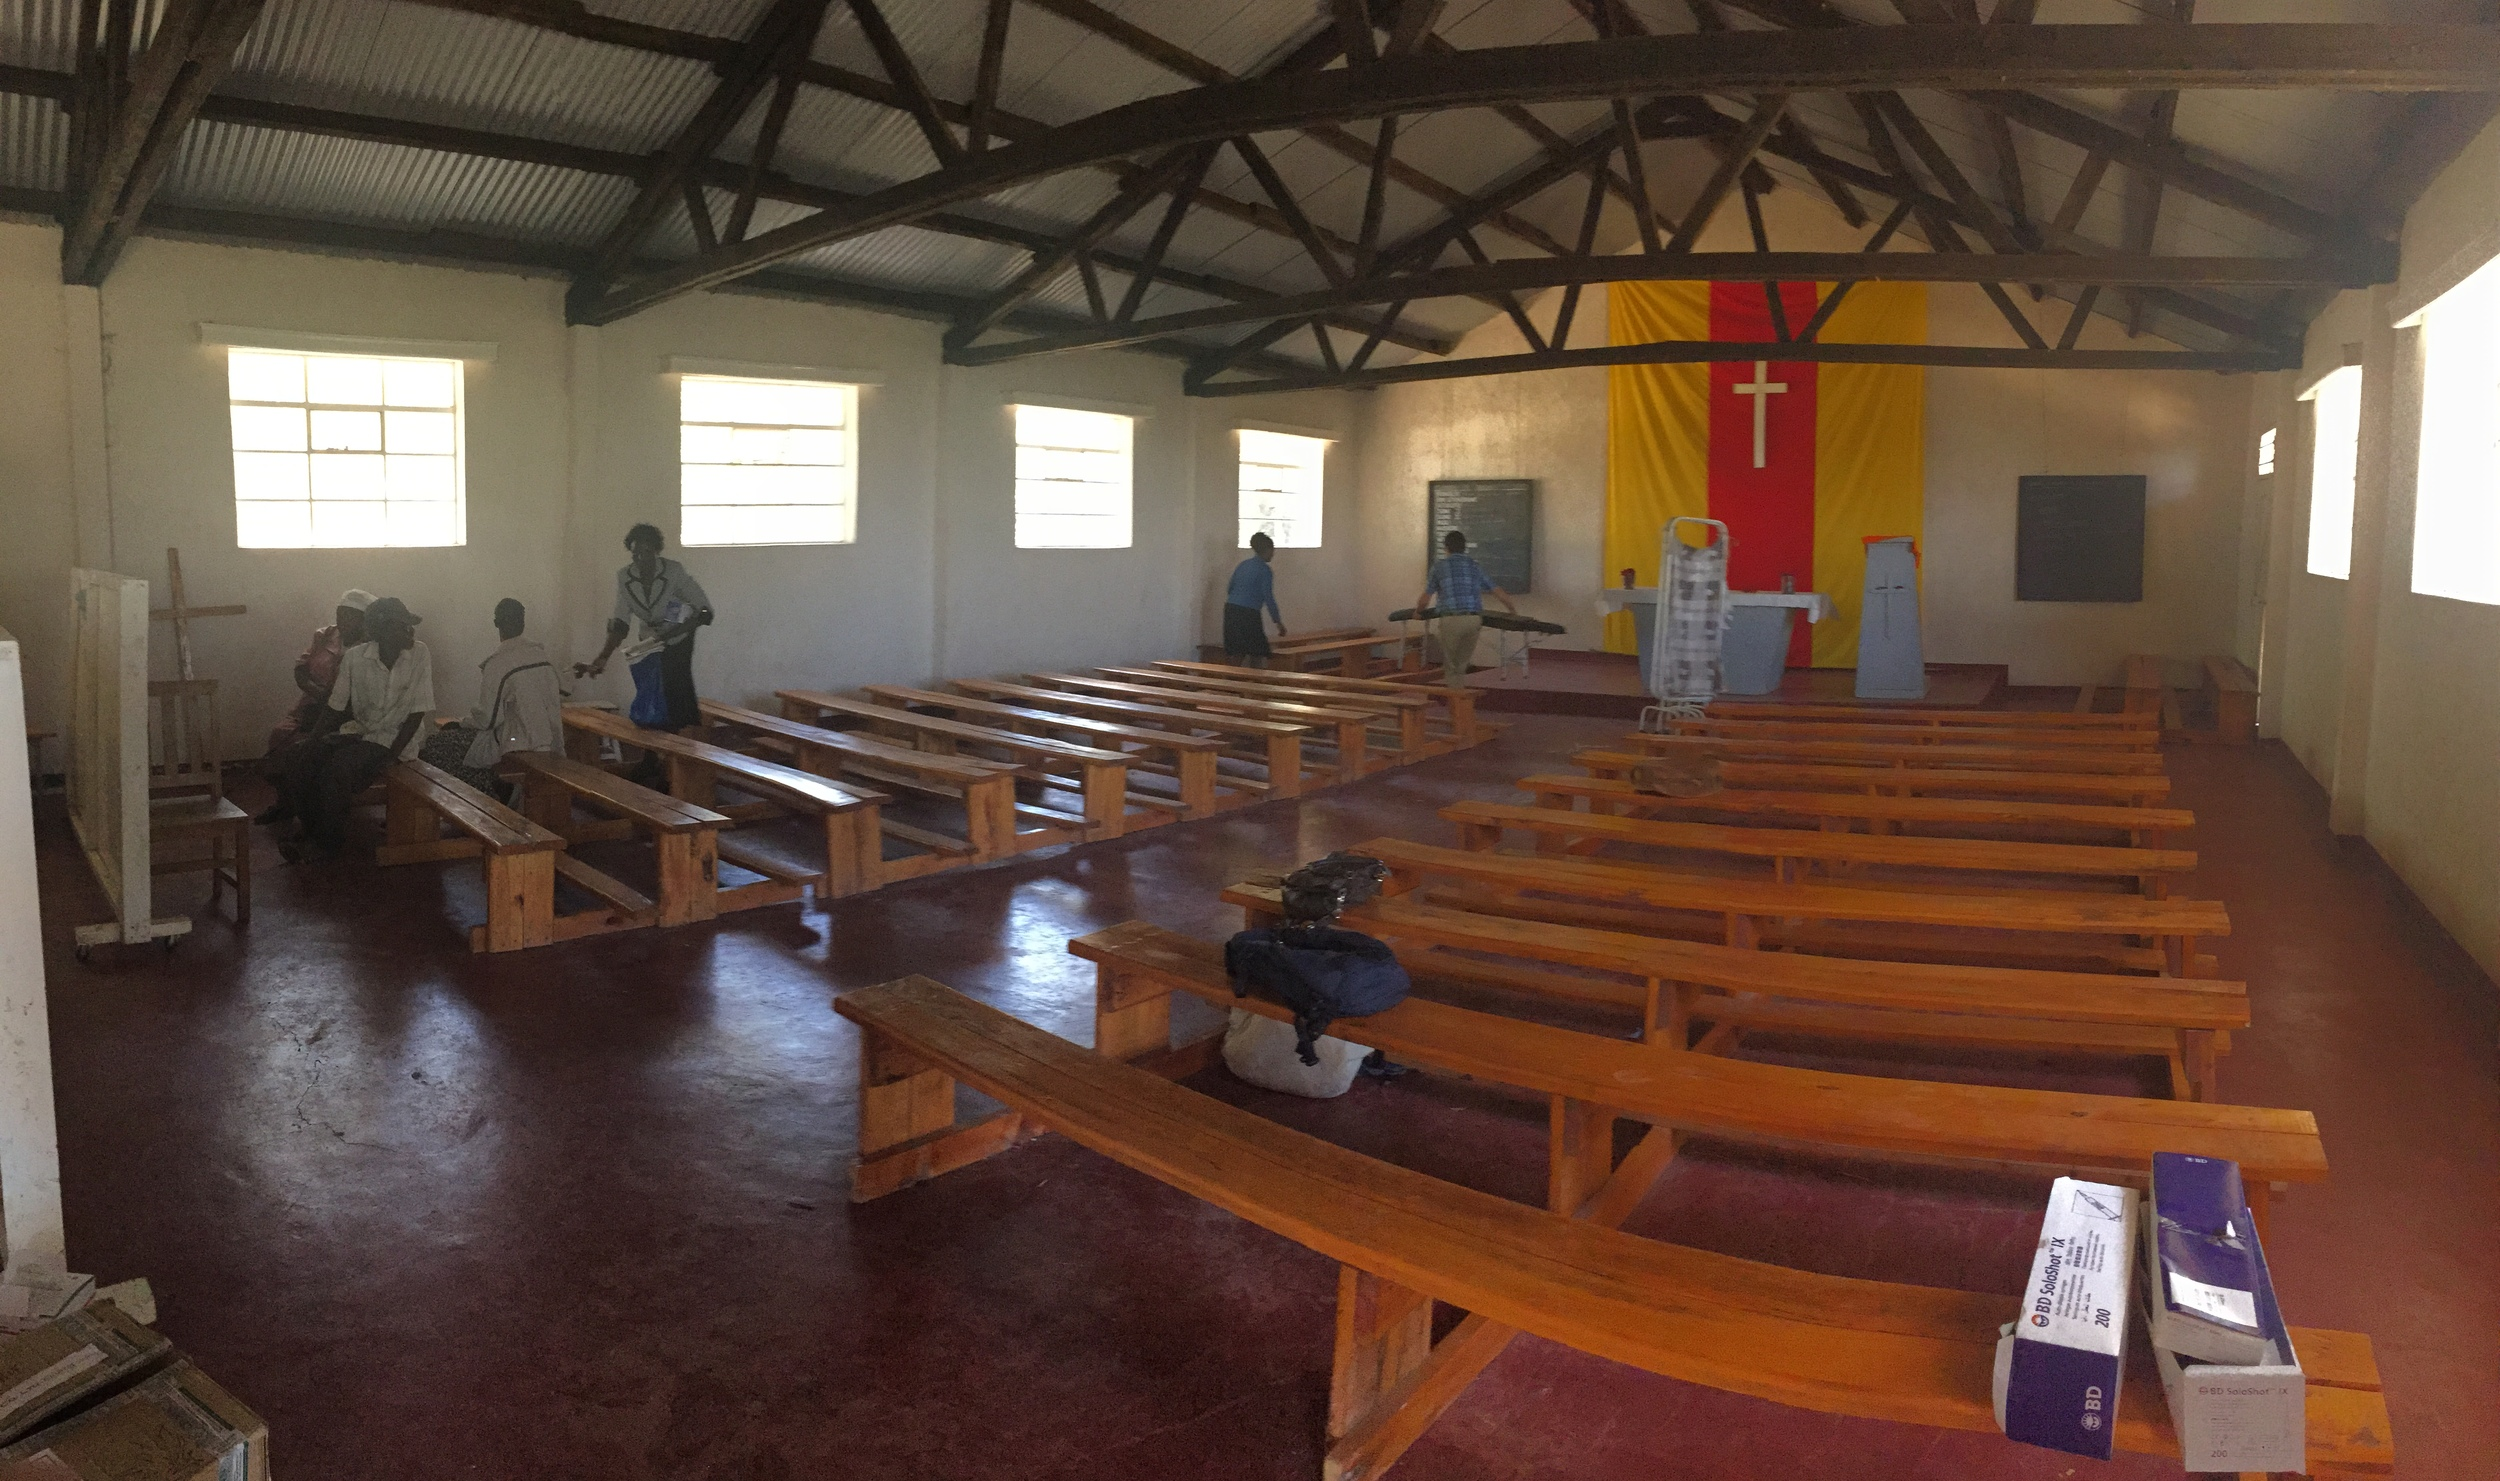 The location of the outreach is in a church.